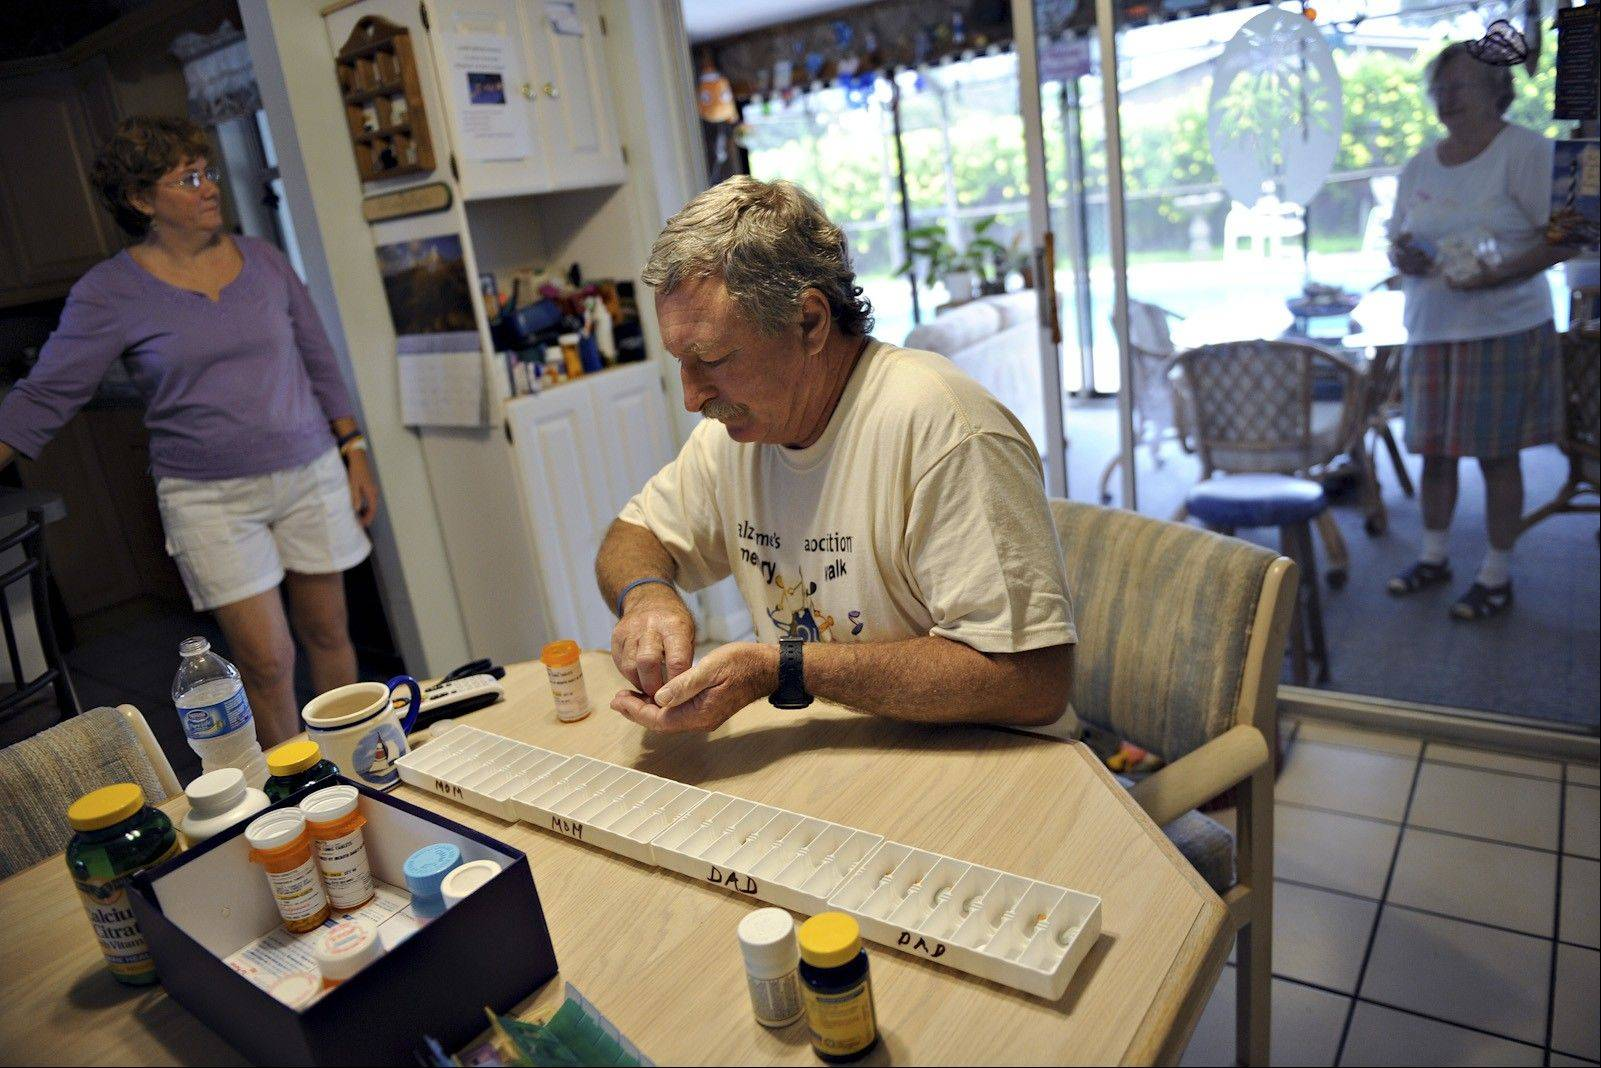 Tom Sinotte organizes his parents' prescription pills as well as their vitamins on the dining room table in their home. Tom's wife, Linda, and his mom, Ardis Sinotte, wait for him to be finished.